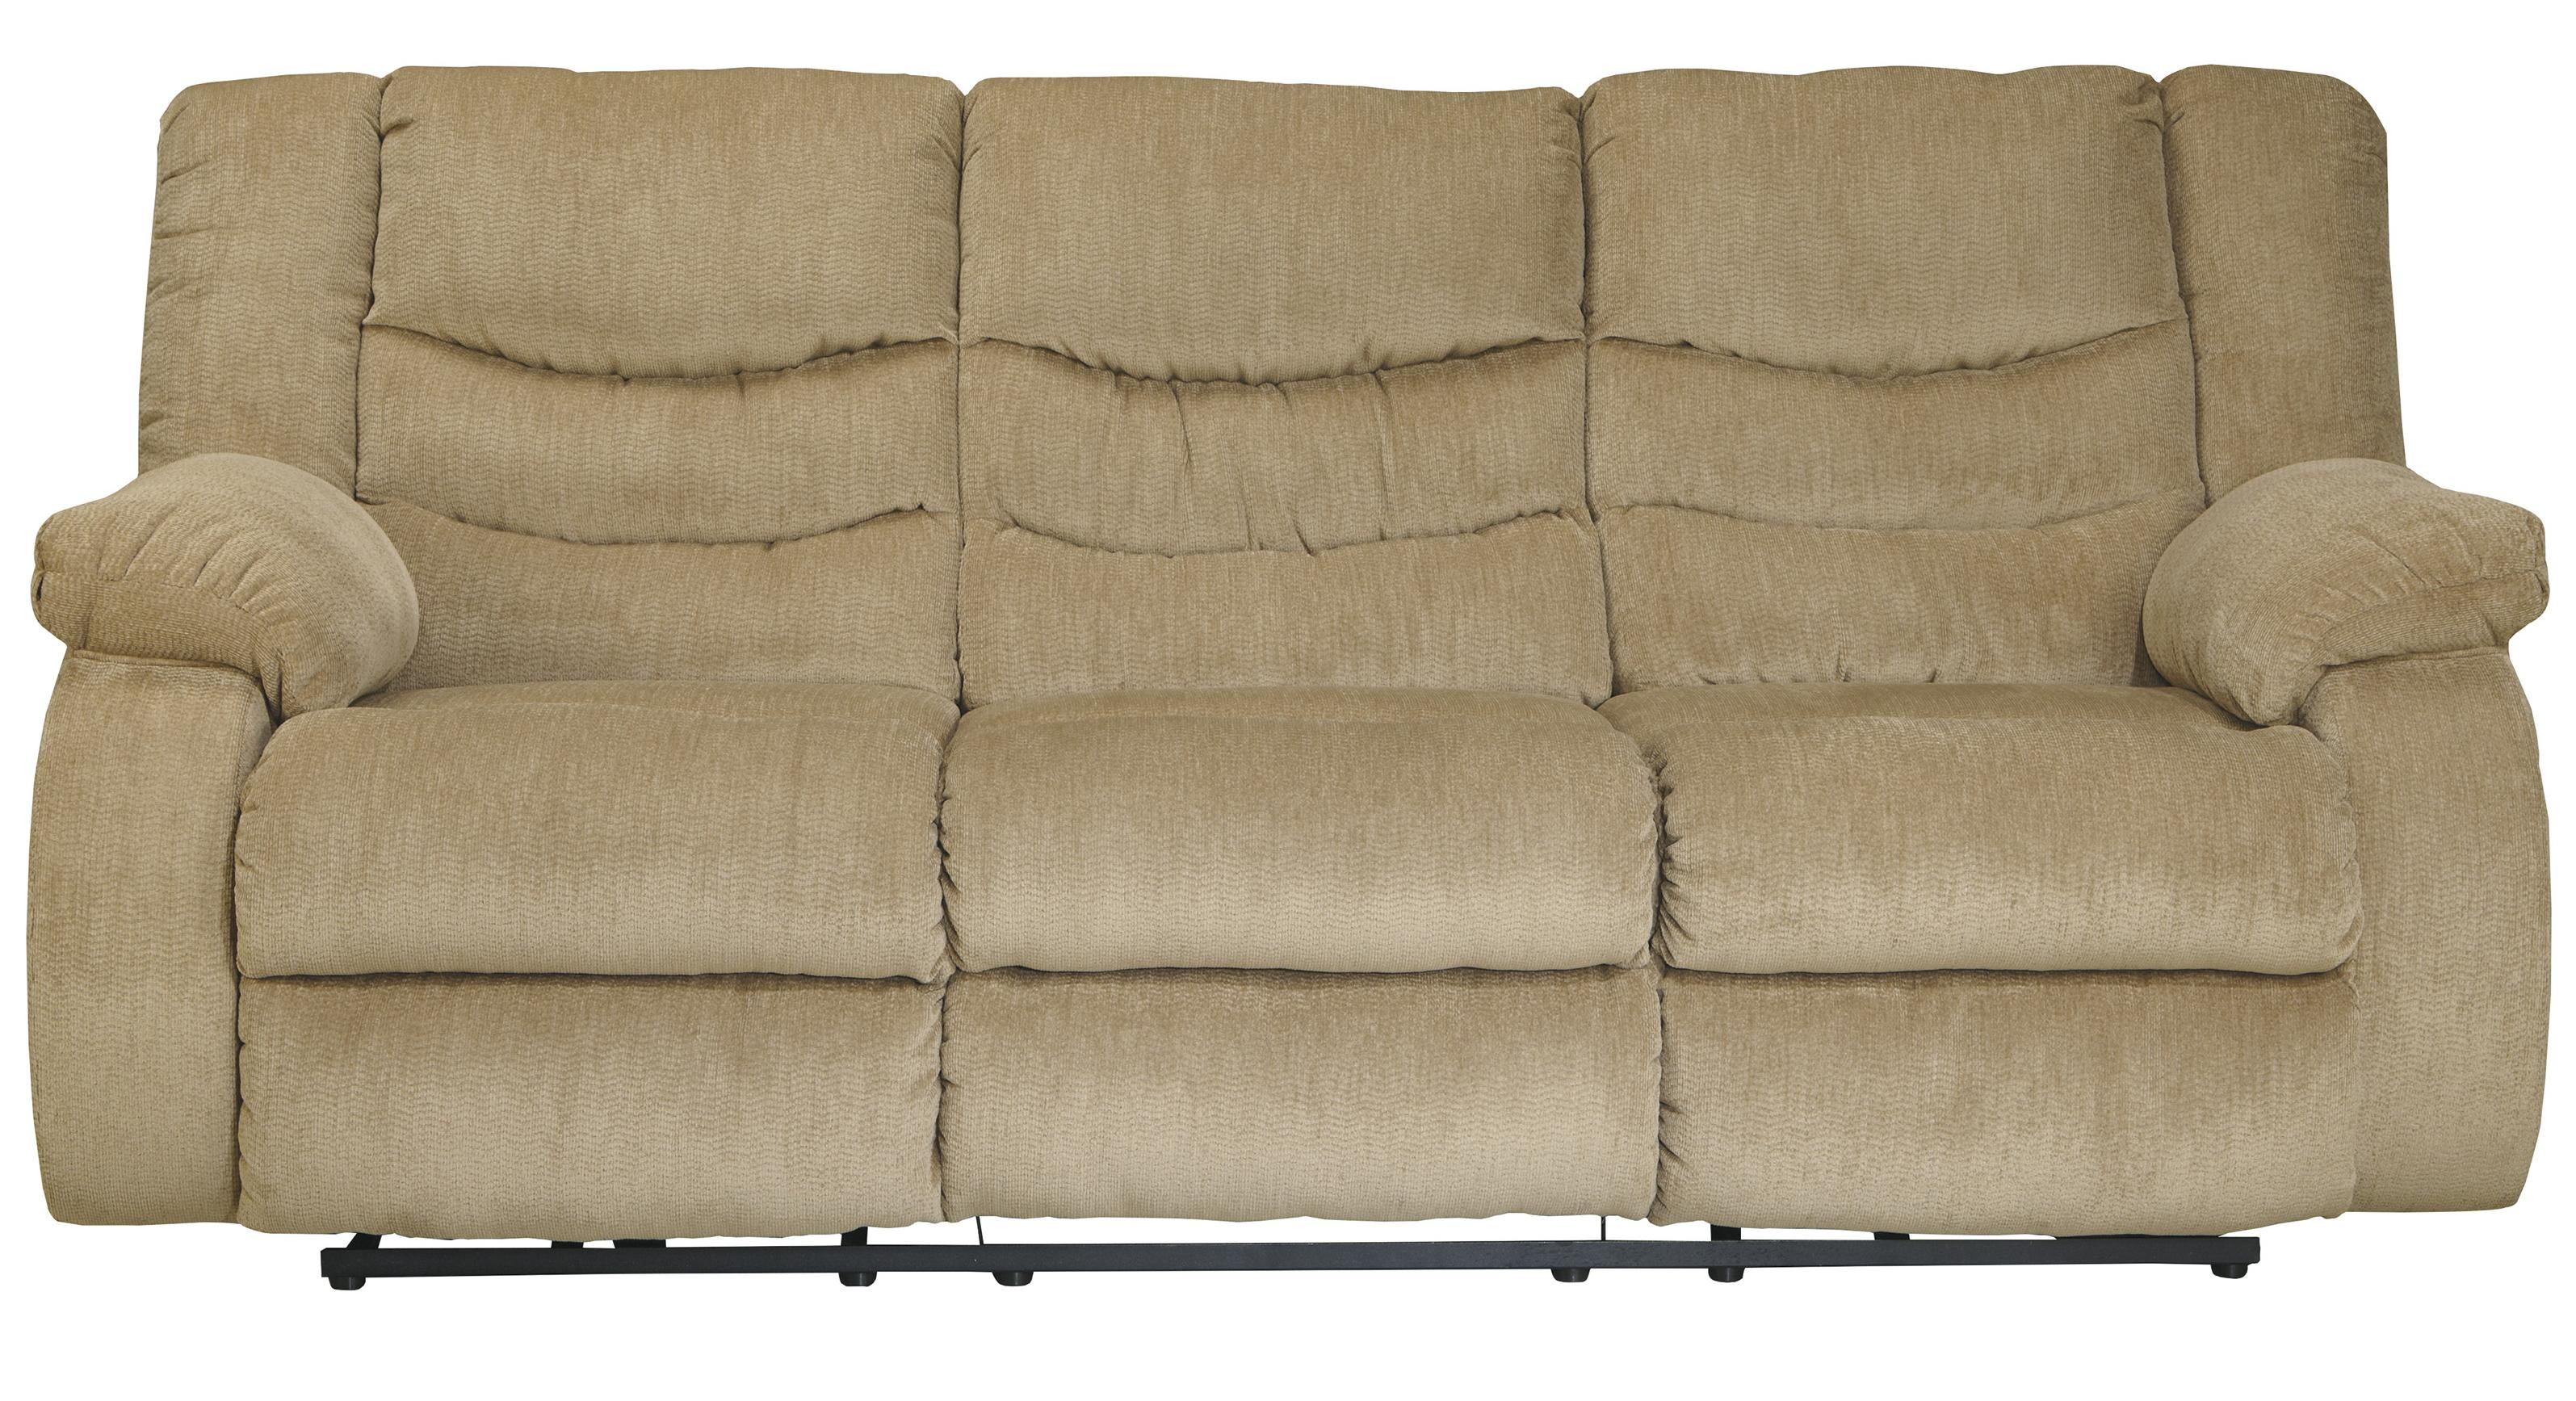 Signature Design by Ashley Garek - Sand Reclining Sofa - Item Number: 9200288